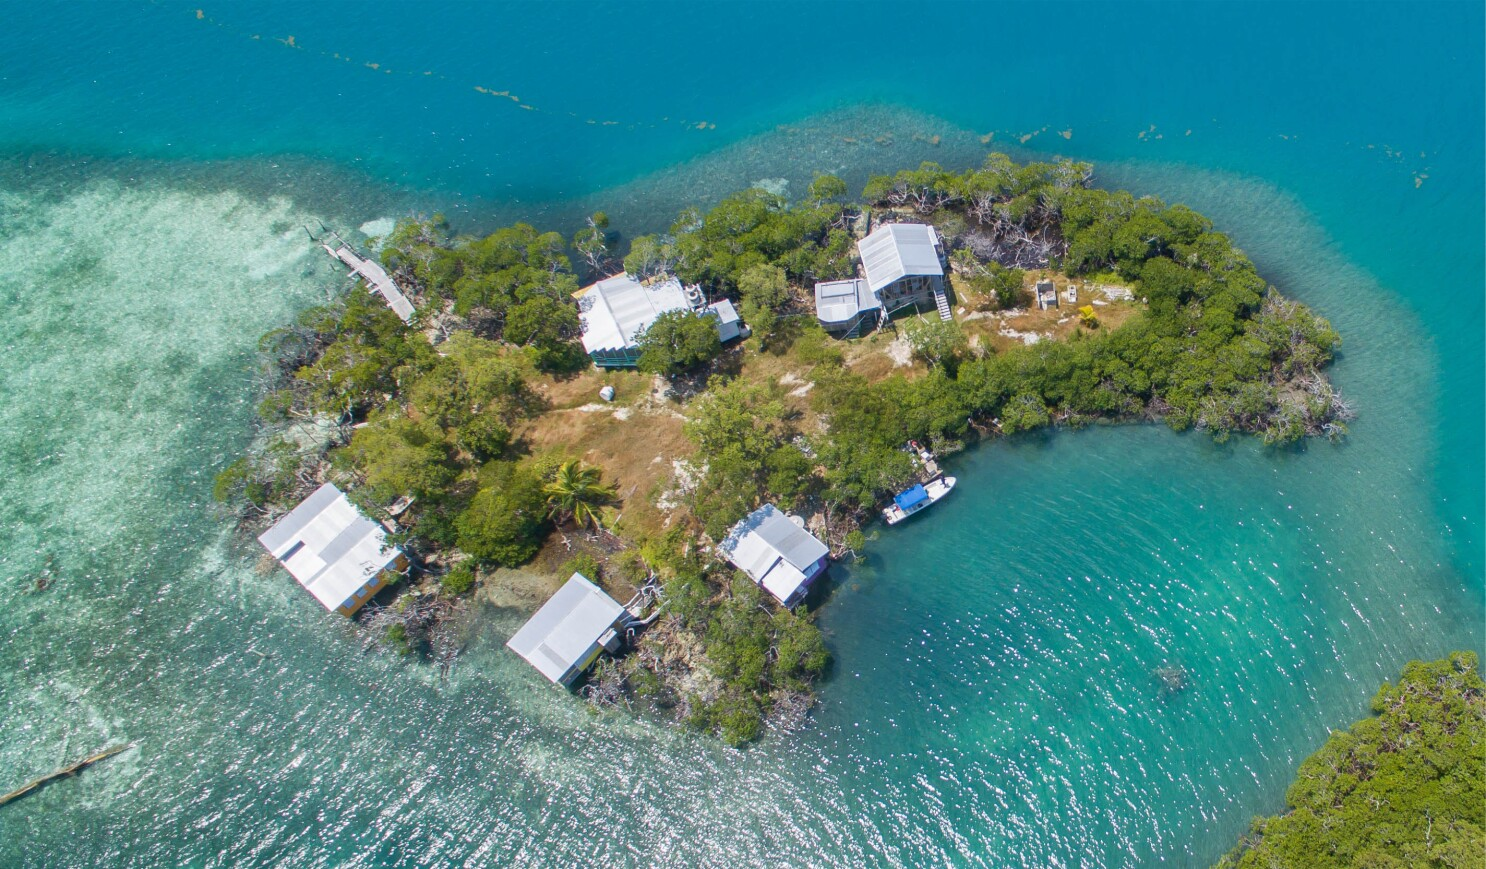 This Belize island costs less than the median price of an L.A. home